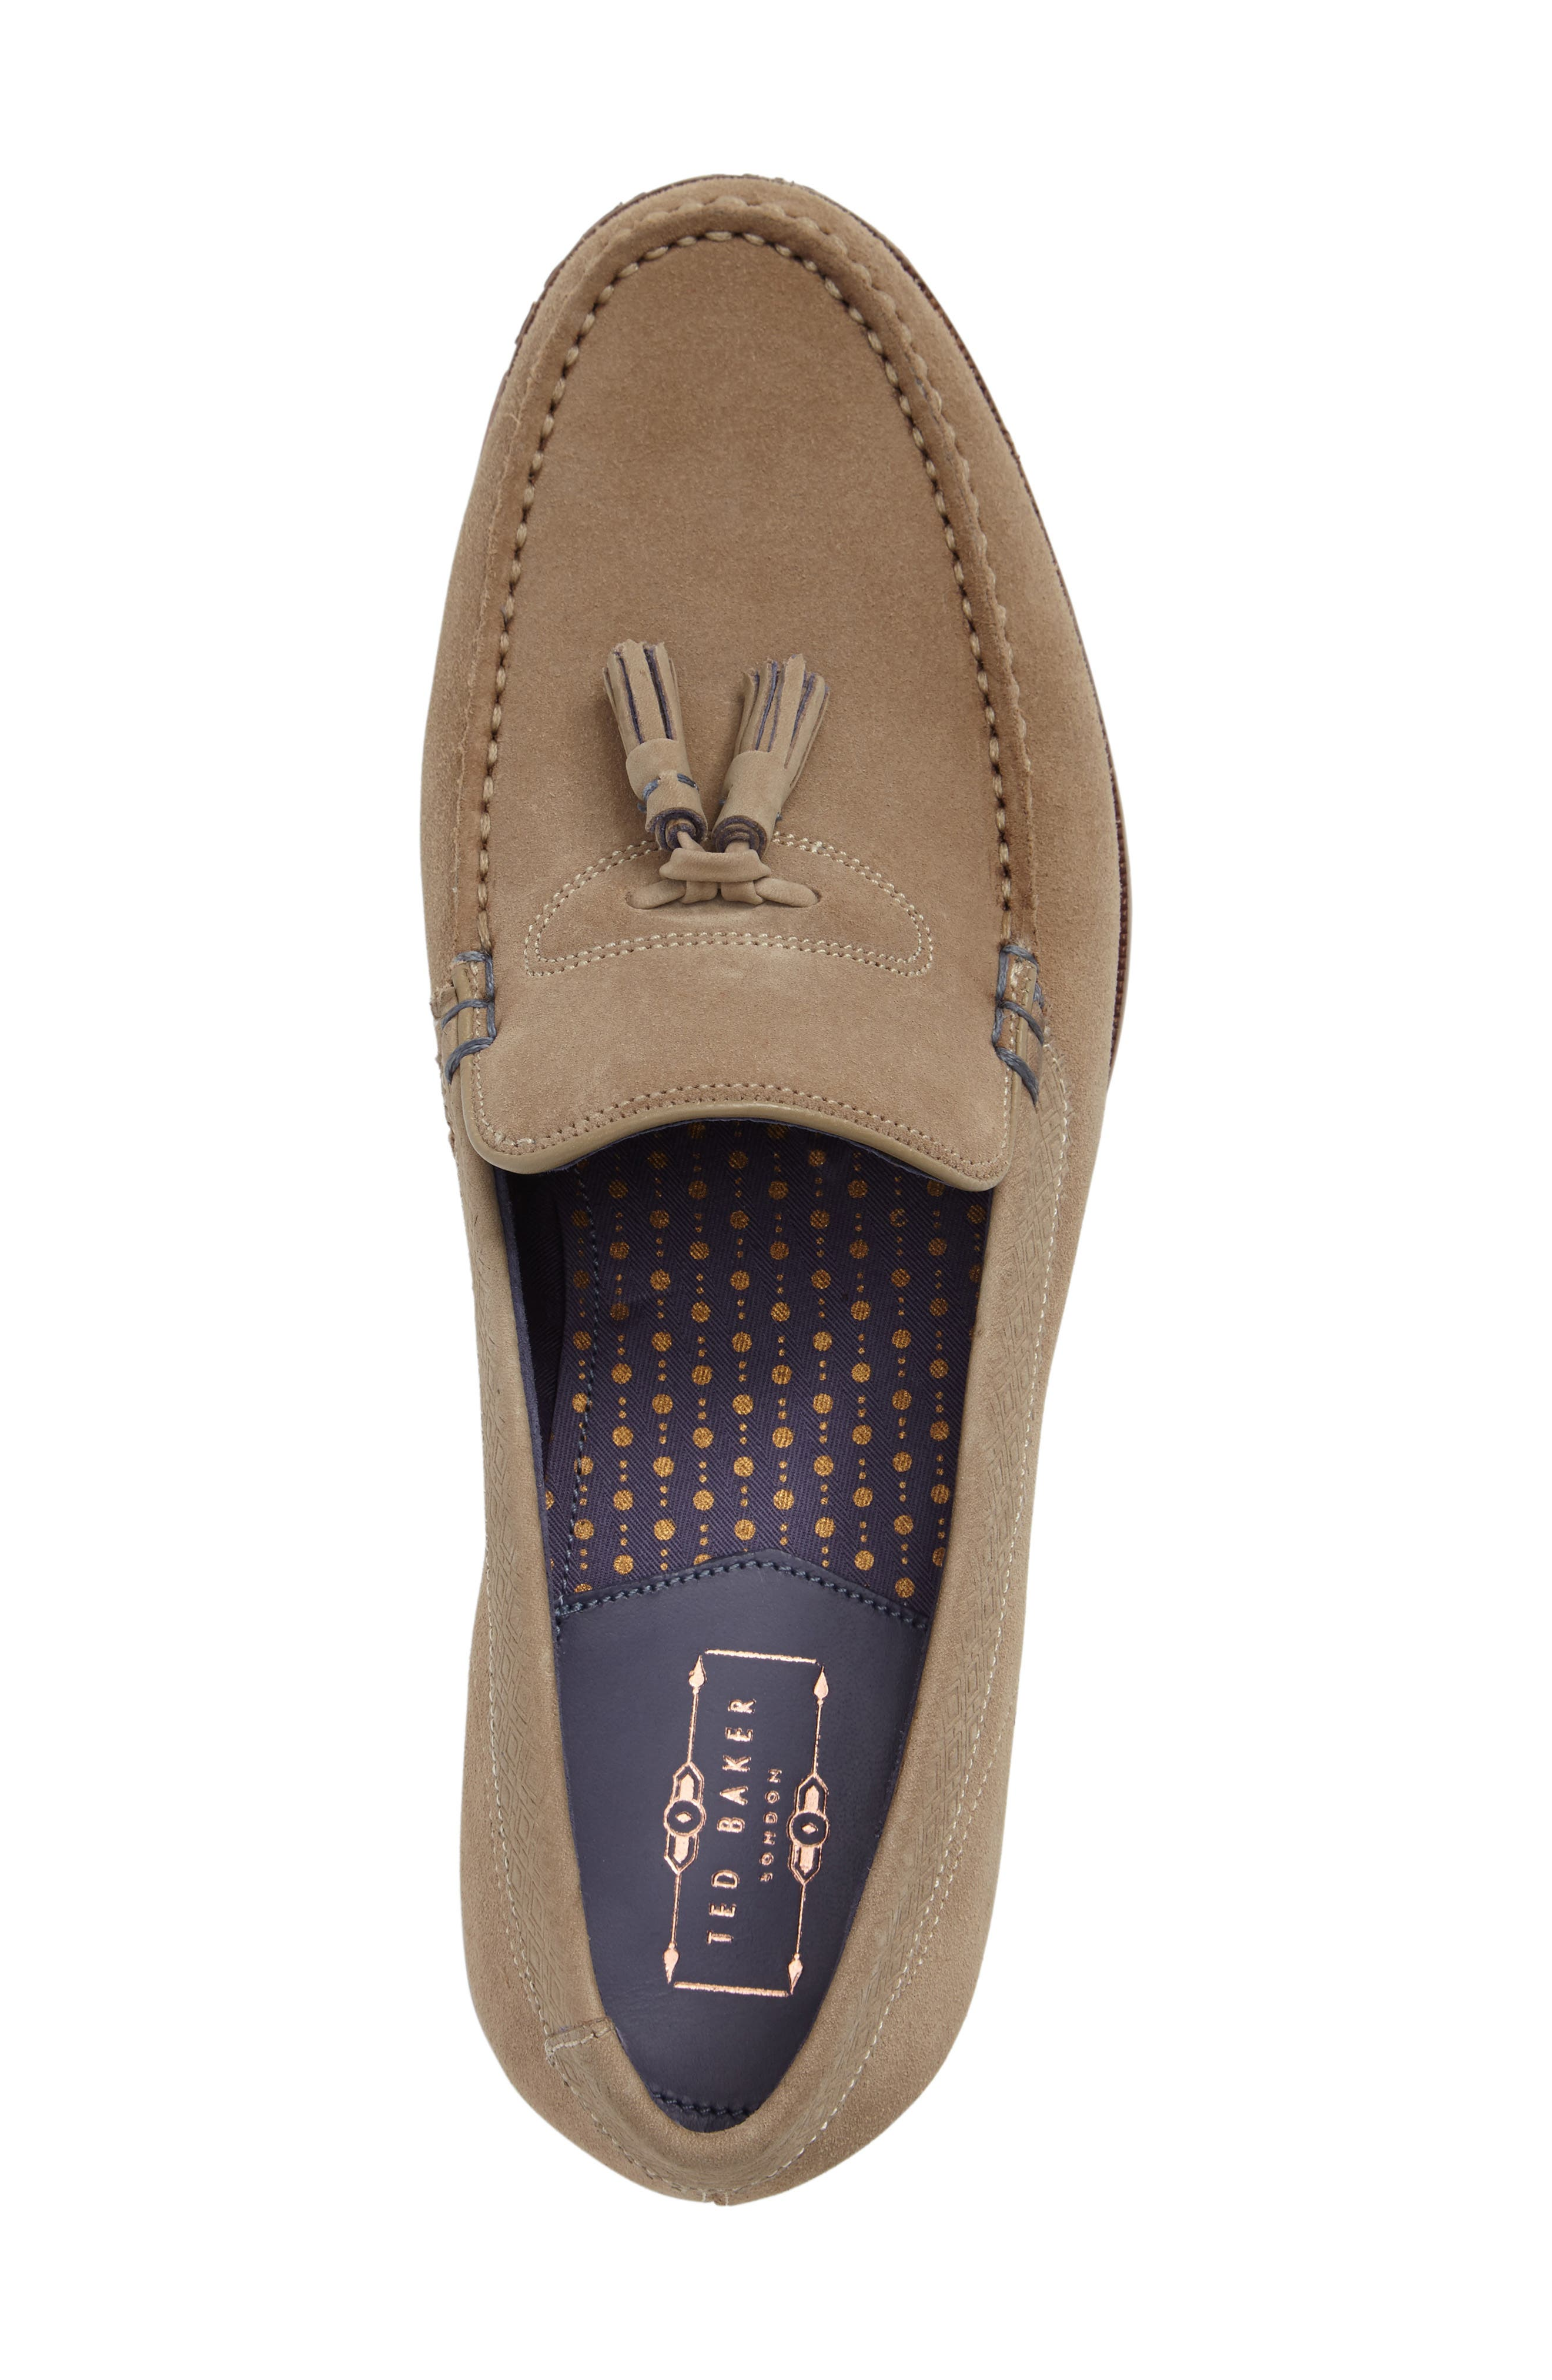 Dougge Tassel Loafer,                             Alternate thumbnail 13, color,